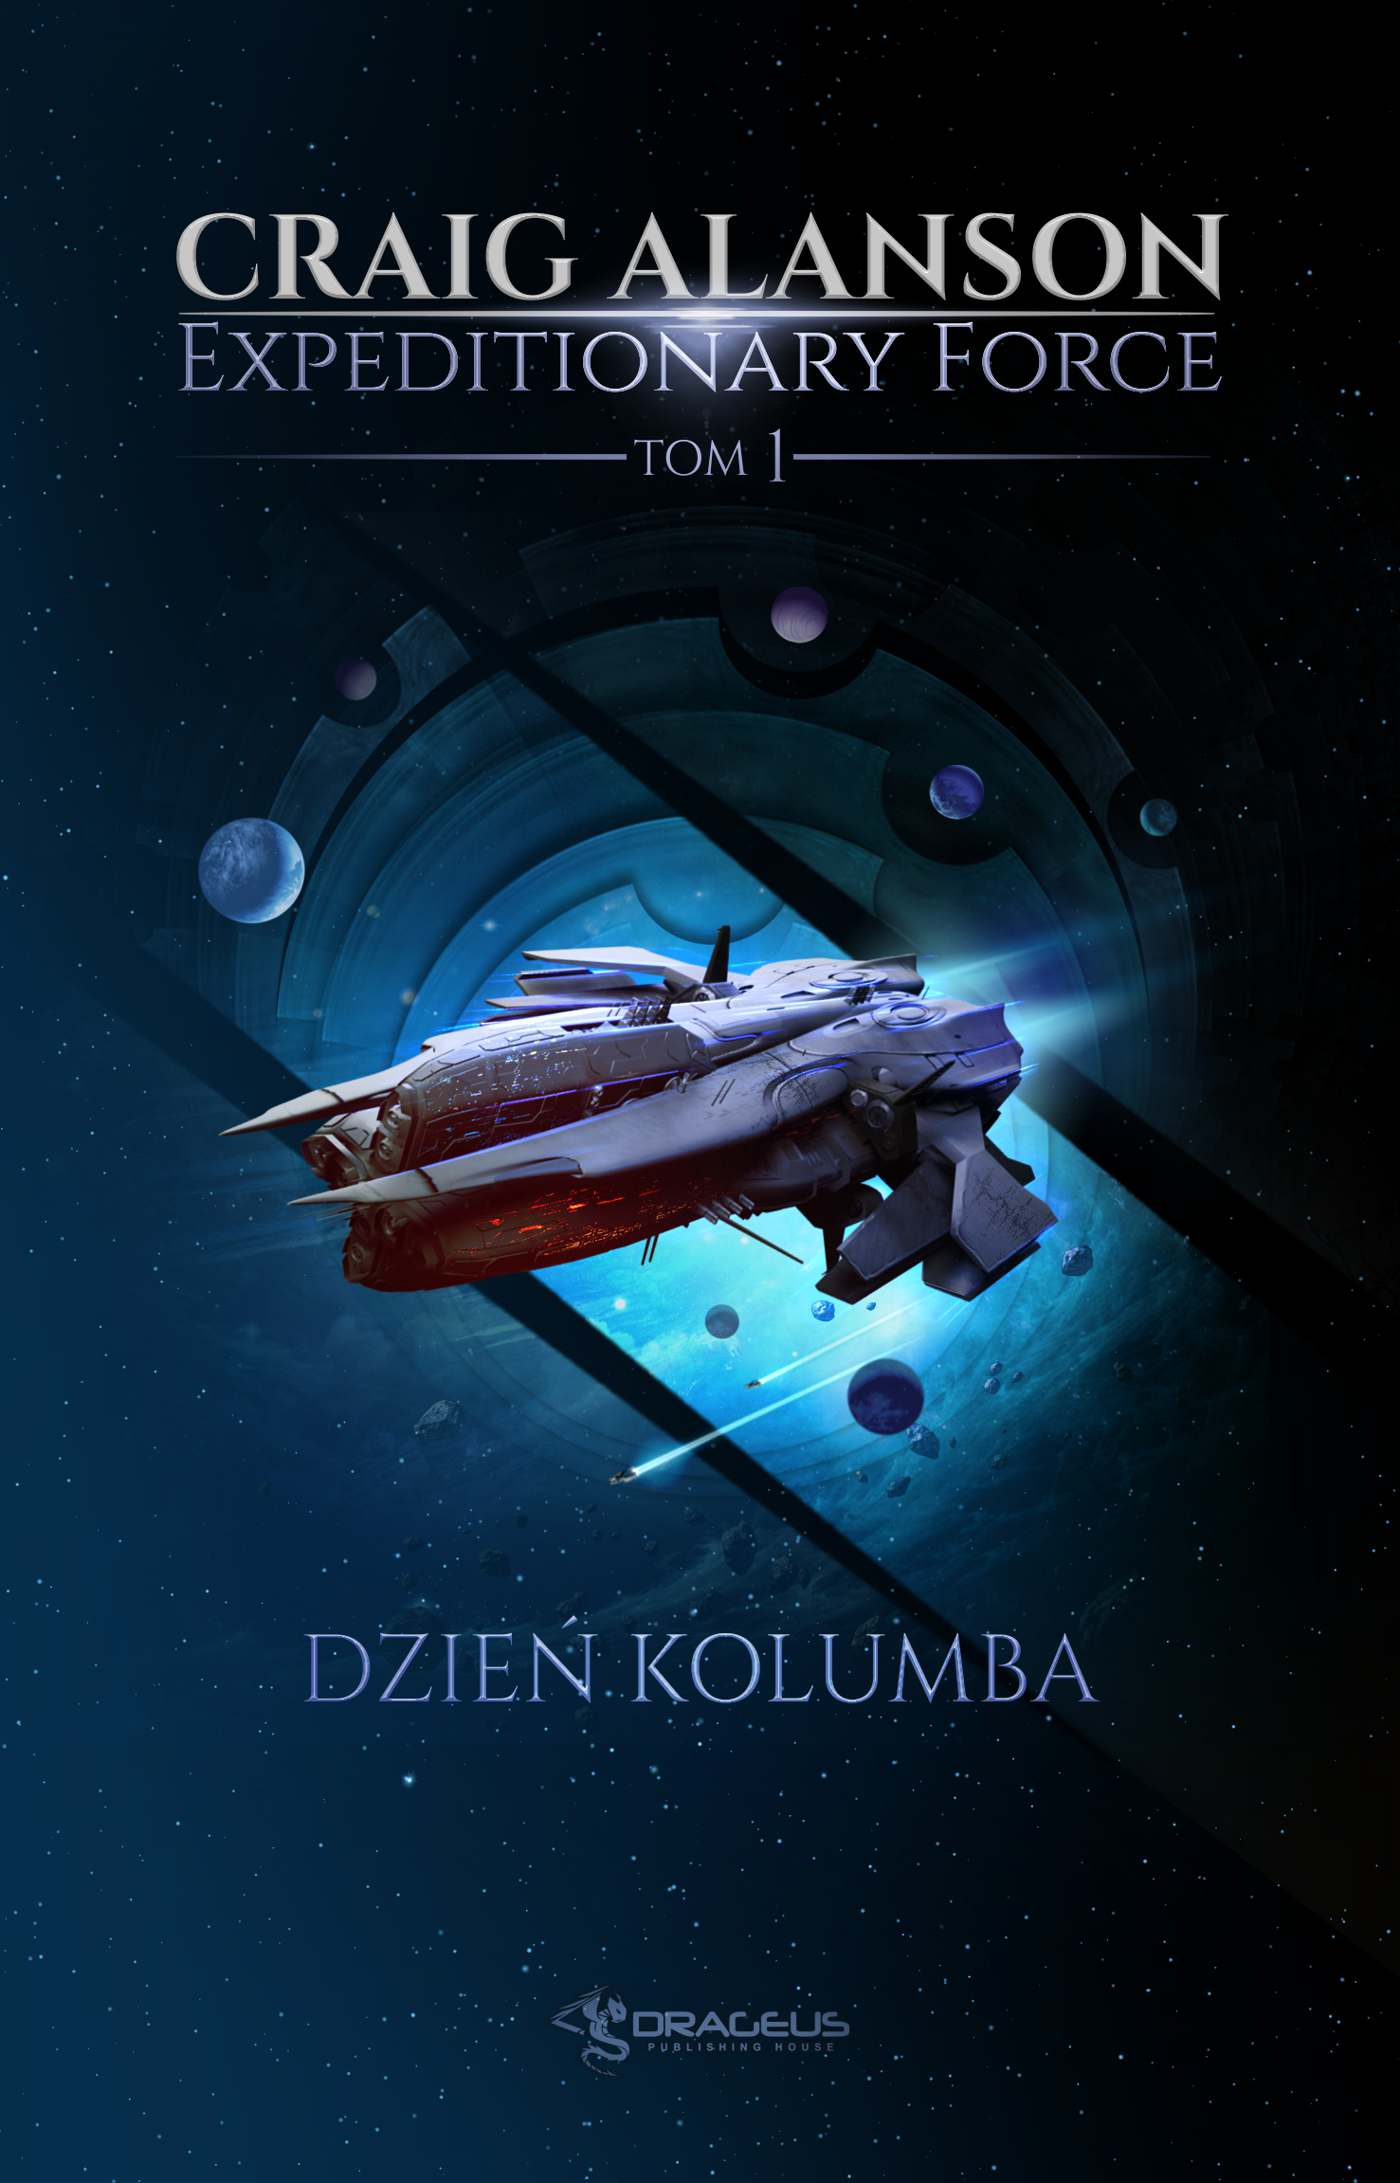 Expeditionary Force. Tom 1. Dzień Kolumba - Ebook (Książka EPUB) do pobrania w formacie EPUB